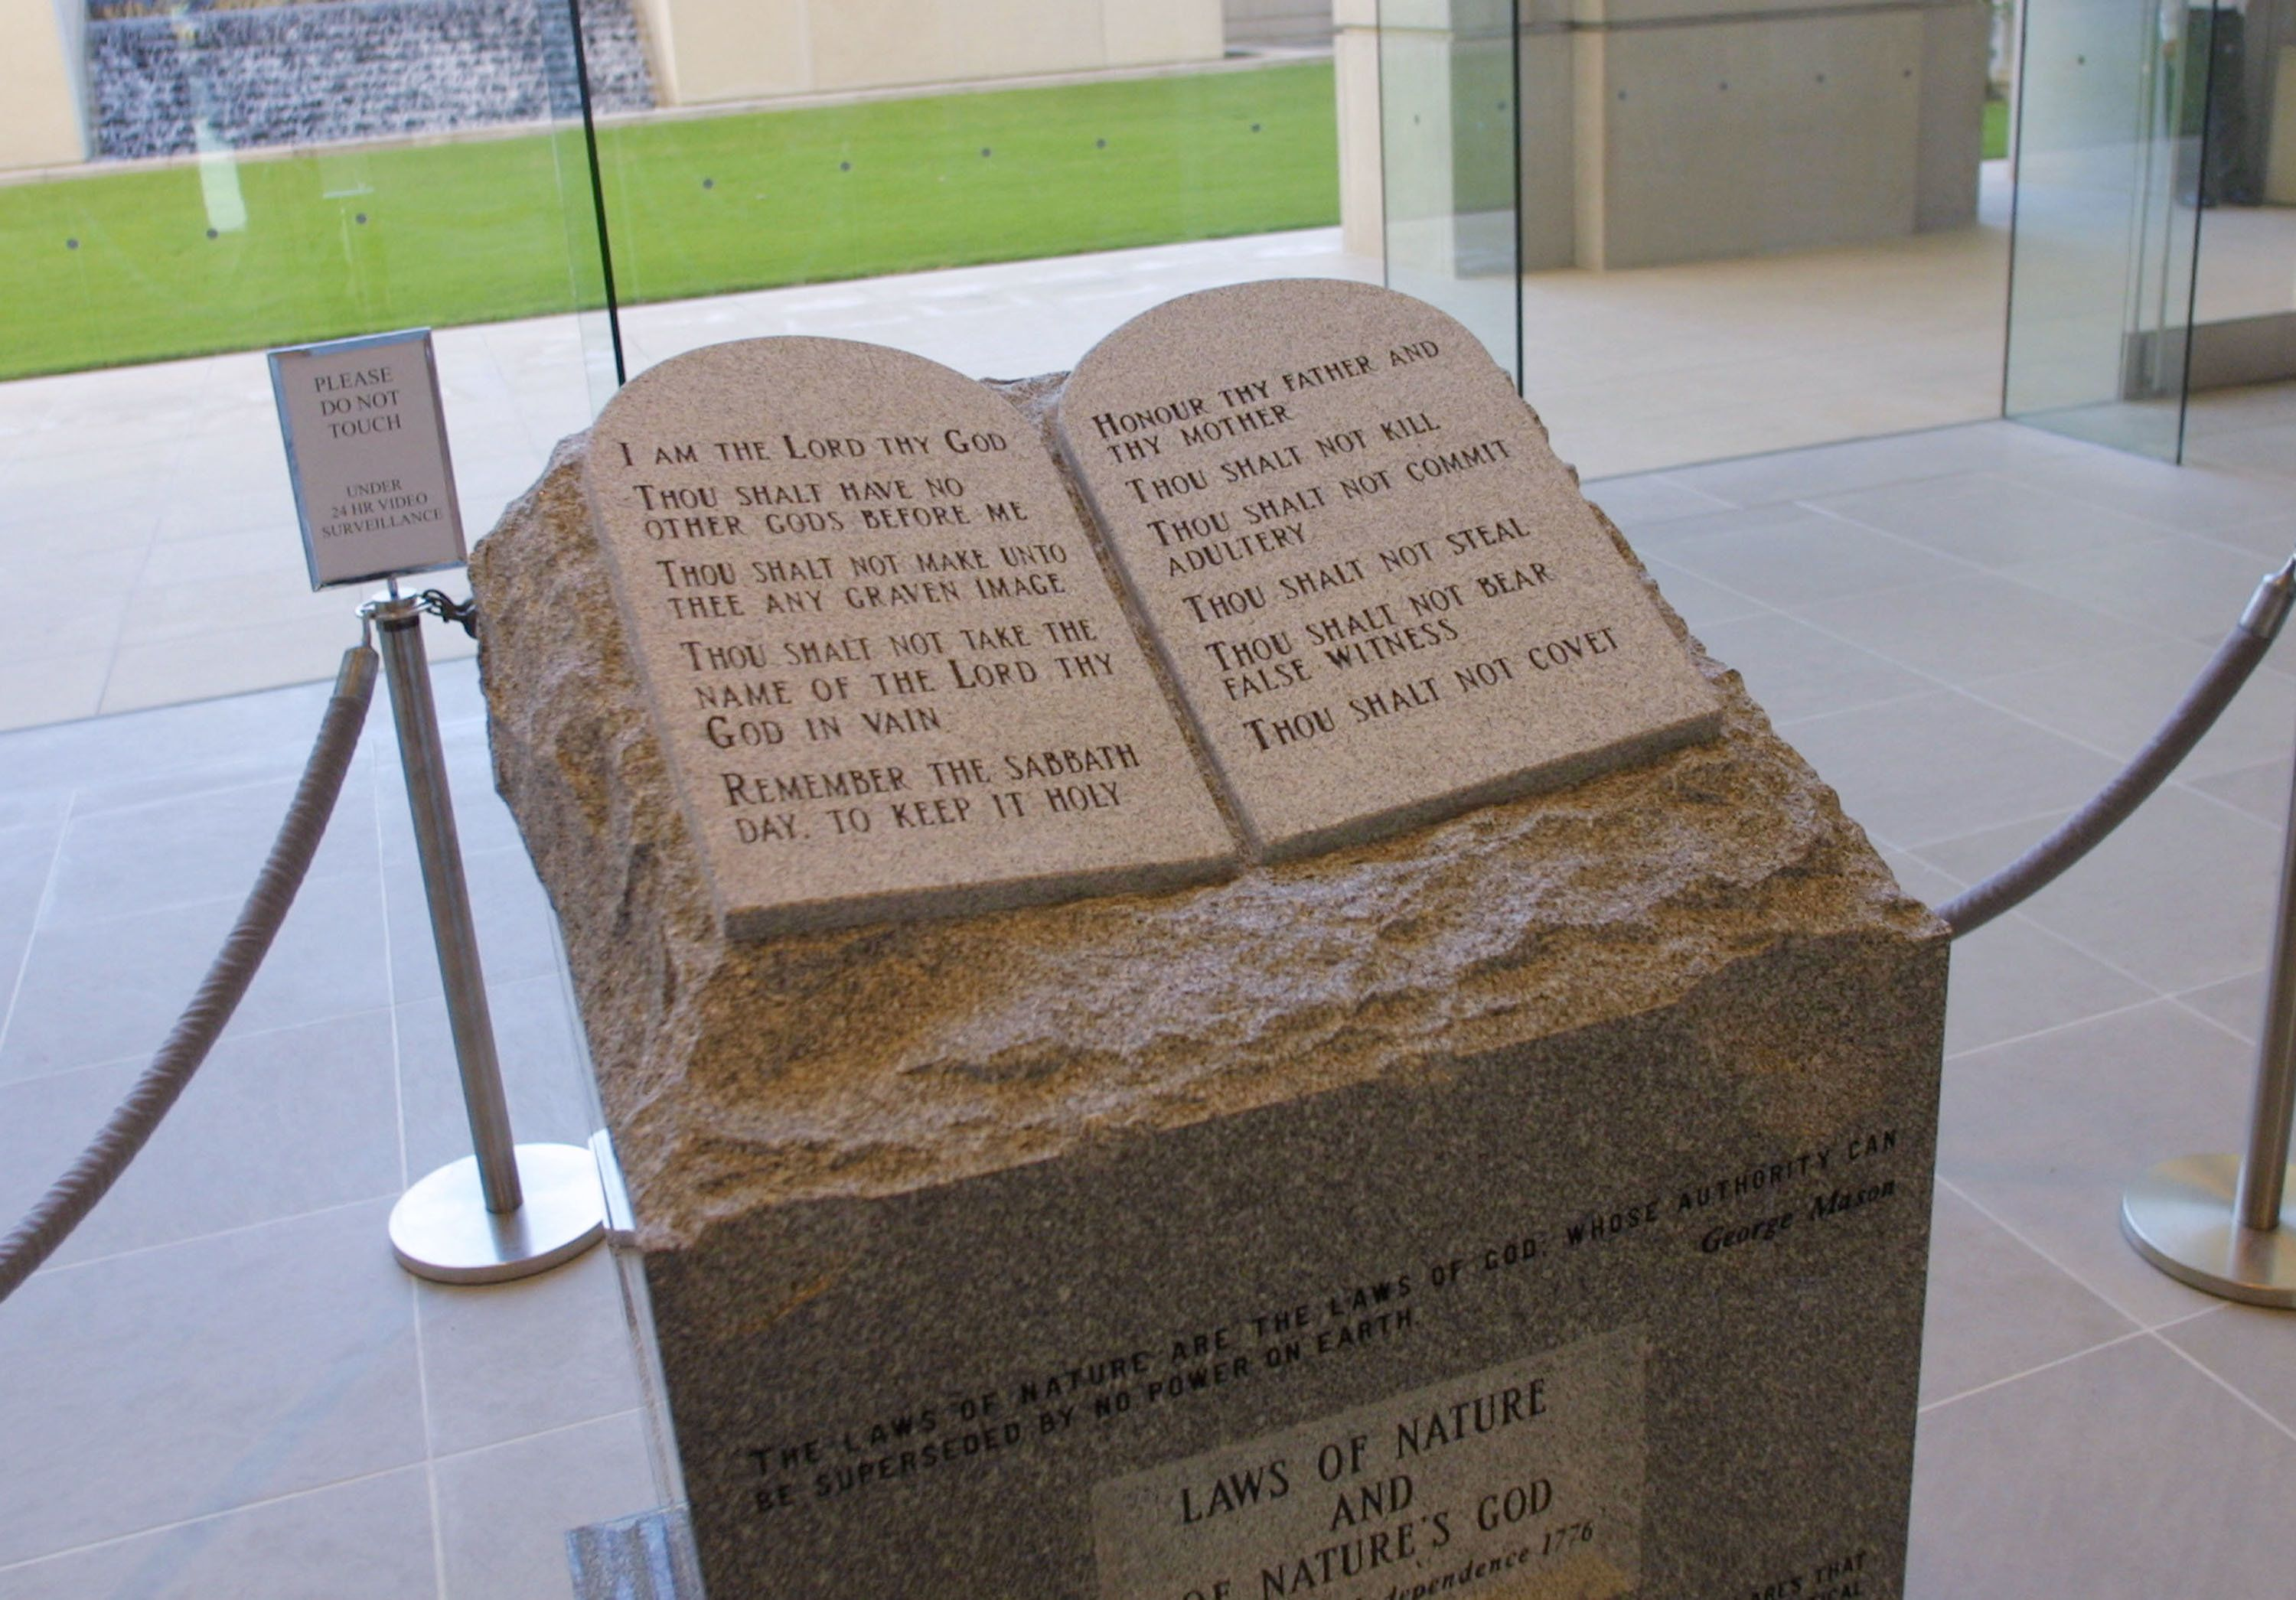 MONTGOMERY, AL - NOVEMBER 18:  The Ten Commandments memorial rests in the lobby of the rotunda of the State Judicial Building November 18, 2002 in Montgomery, Alabama. U.S. District Judge Myron Thompson ruled November 18, 2002 that the monument violates the constitution's ban on government promotion of religion and must be removed. Thompson gave Alabama Chief Justice Roy Moore 30 days to remove the 5,300-pound granite monument.  (Photo by Gary Tramontina/Getty Images)